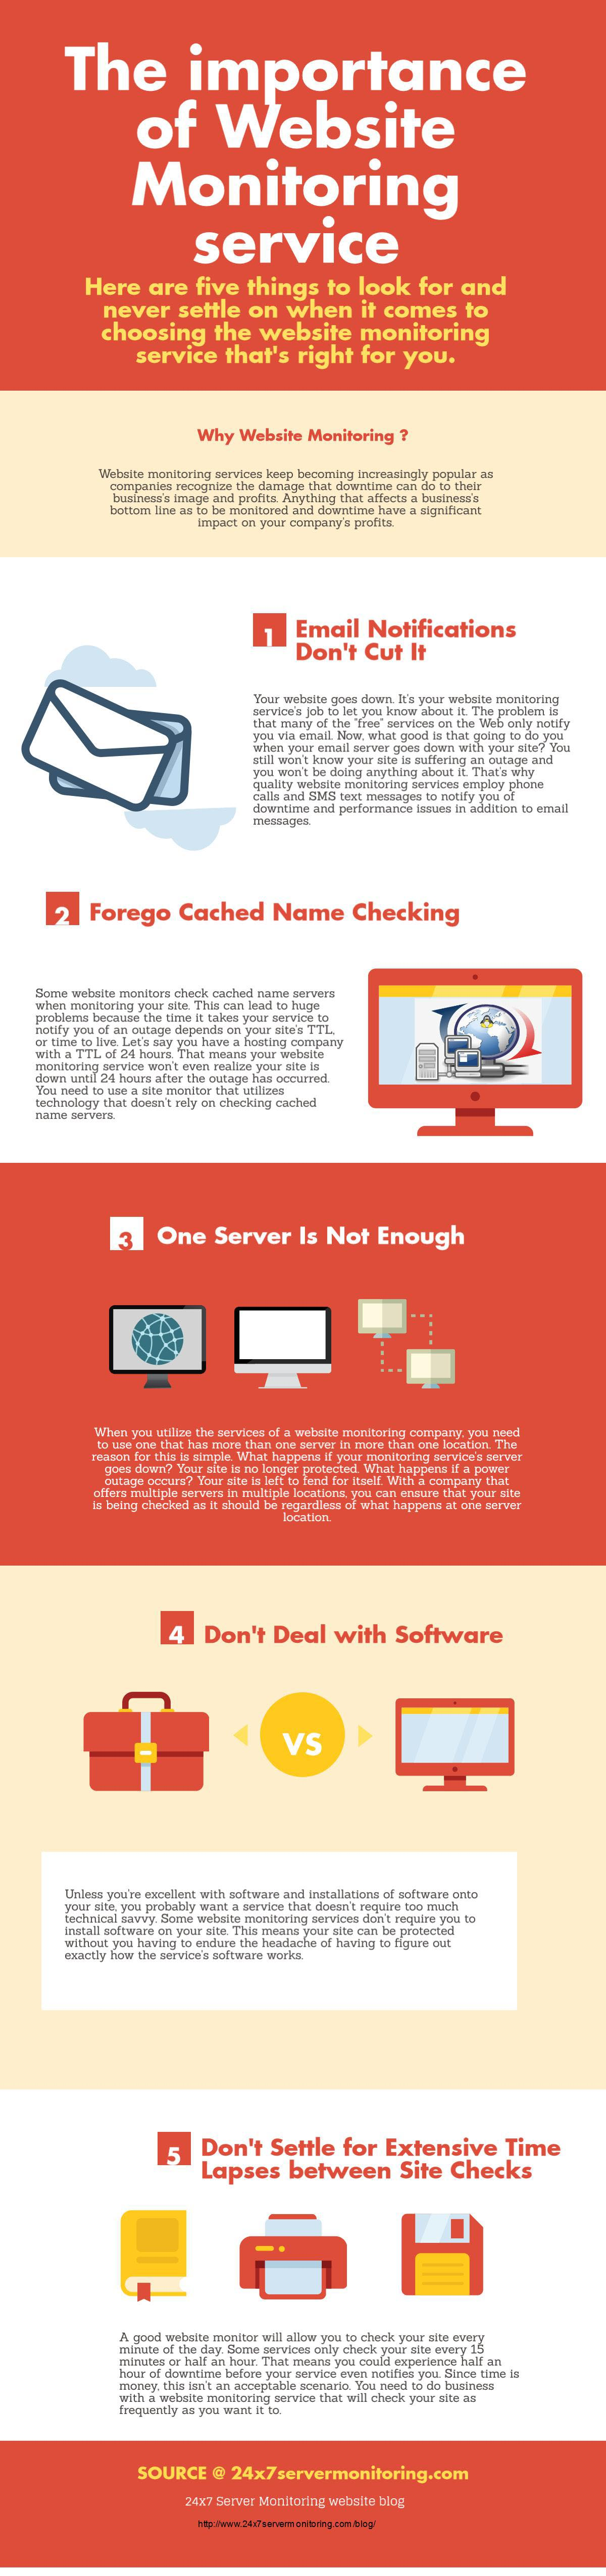 24x7servermonit websitemonitoring11